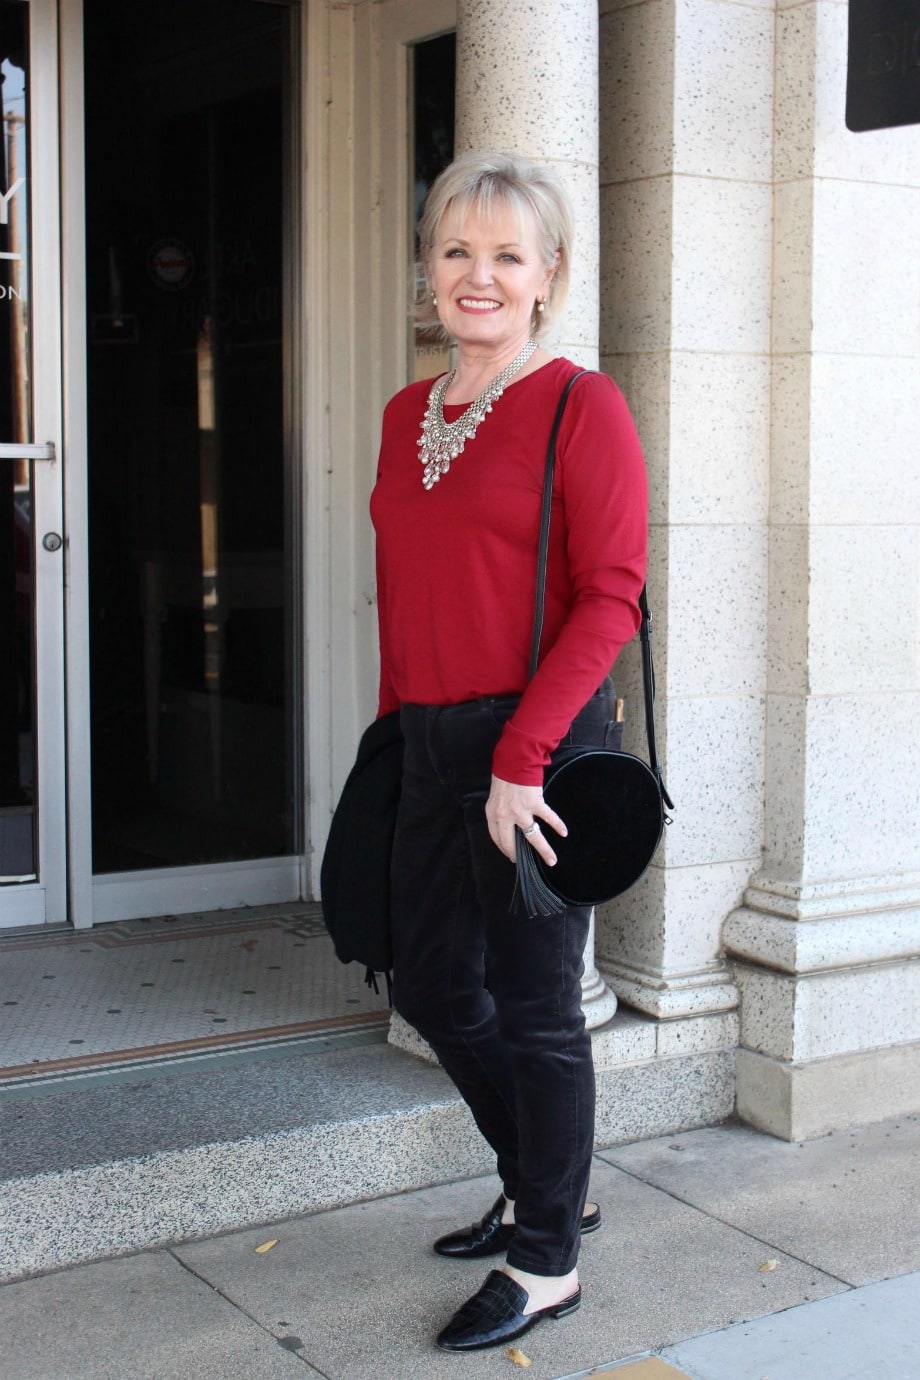 Velvet jeans from Ann Taylor on A Well Styled Life